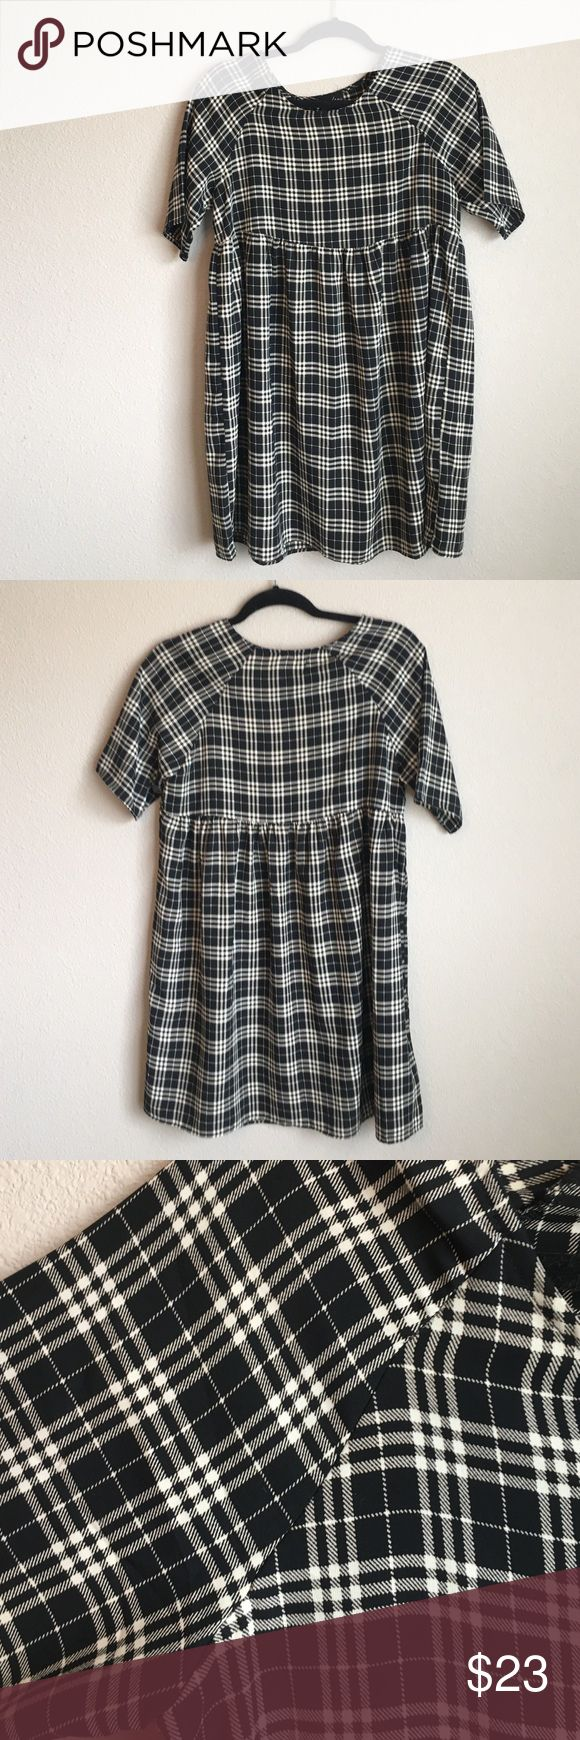 Selling this Checkered Print Babydoll-style Dress - S on Poshmark! My username is: gealg. #shopmycloset #poshmark #fashion #shopping #style #forsale #Audrey #Dresses & Skirts